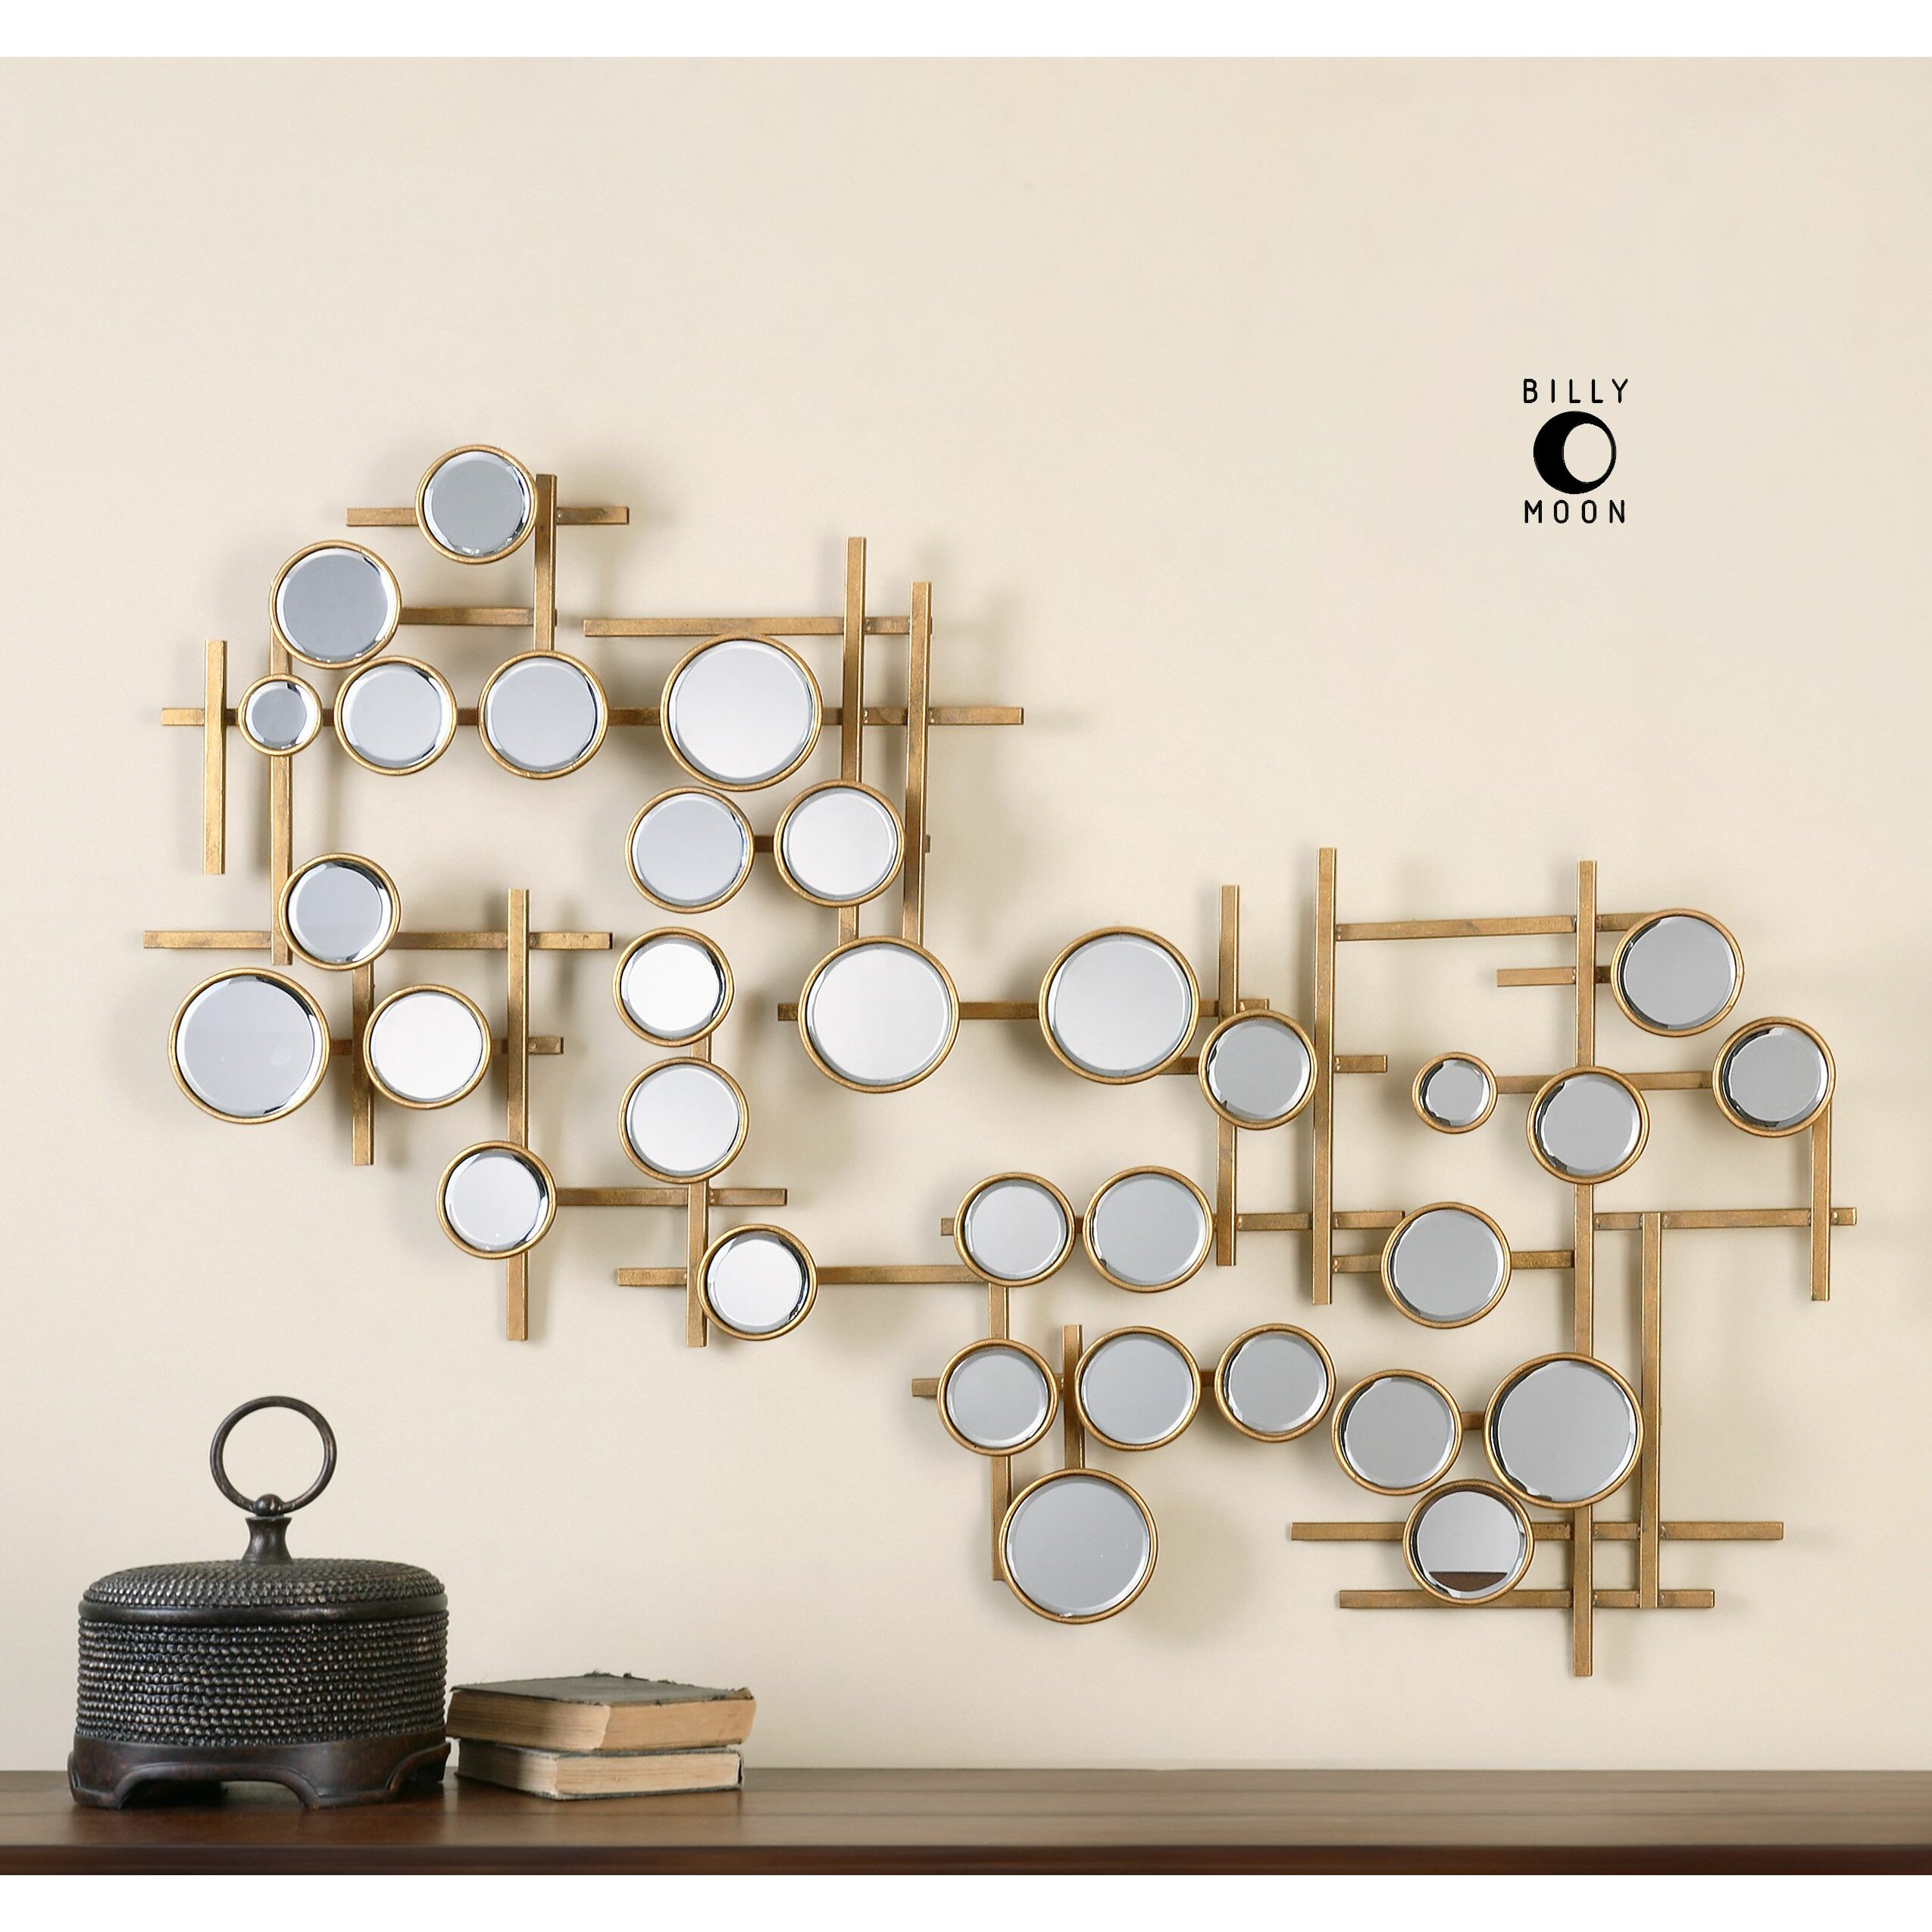 uttermost britton mirrored wall decor - Mirrored Wall Decor